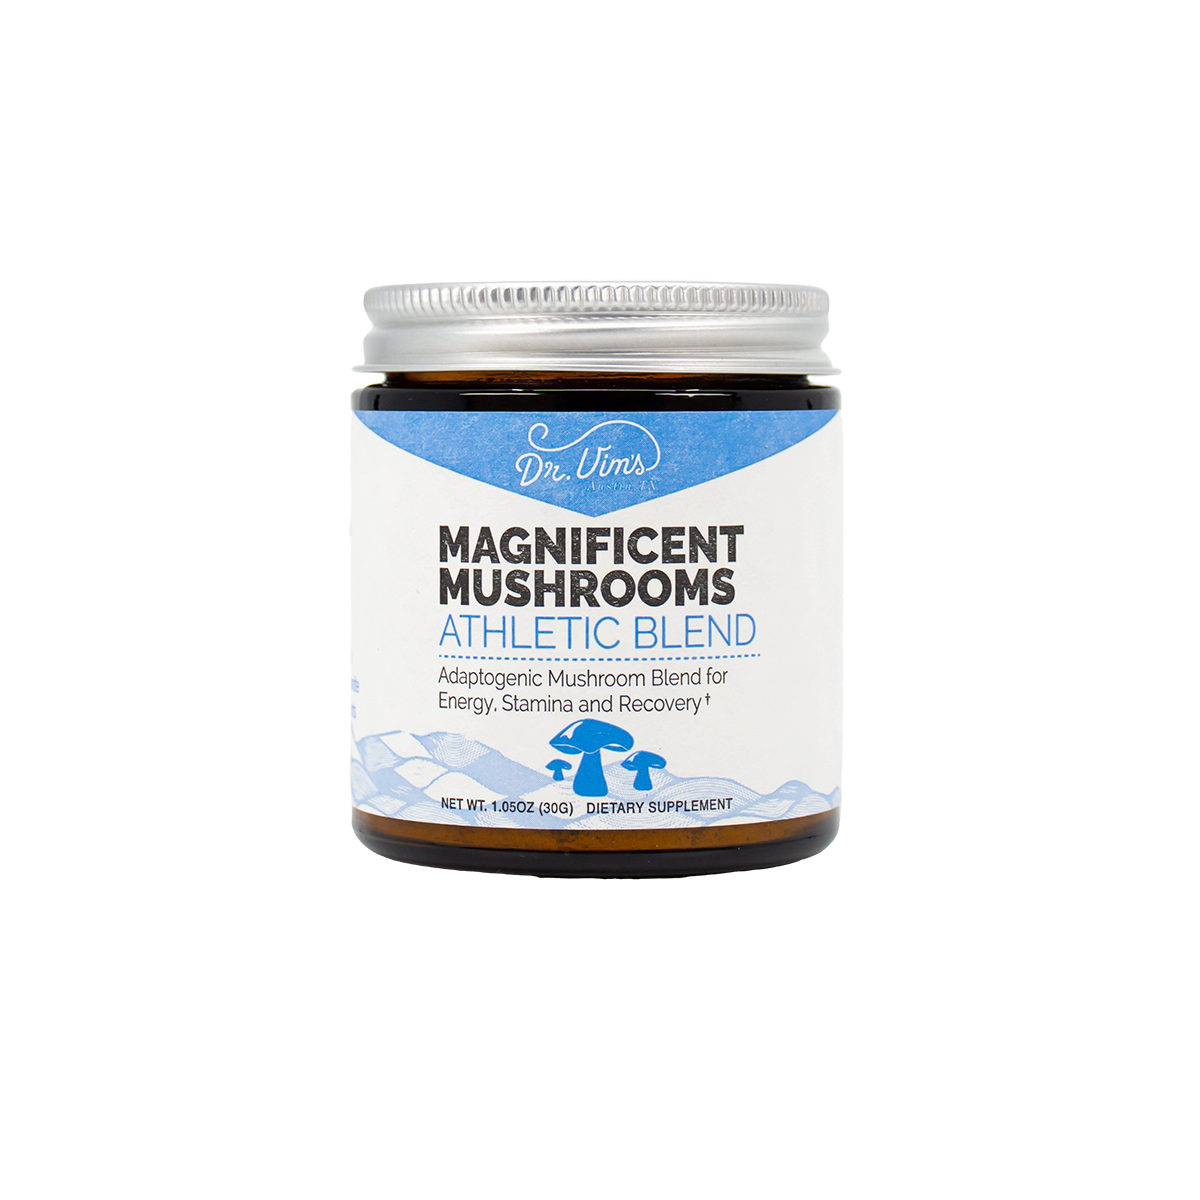 Magnificent Mushrooms - Athletic Blend